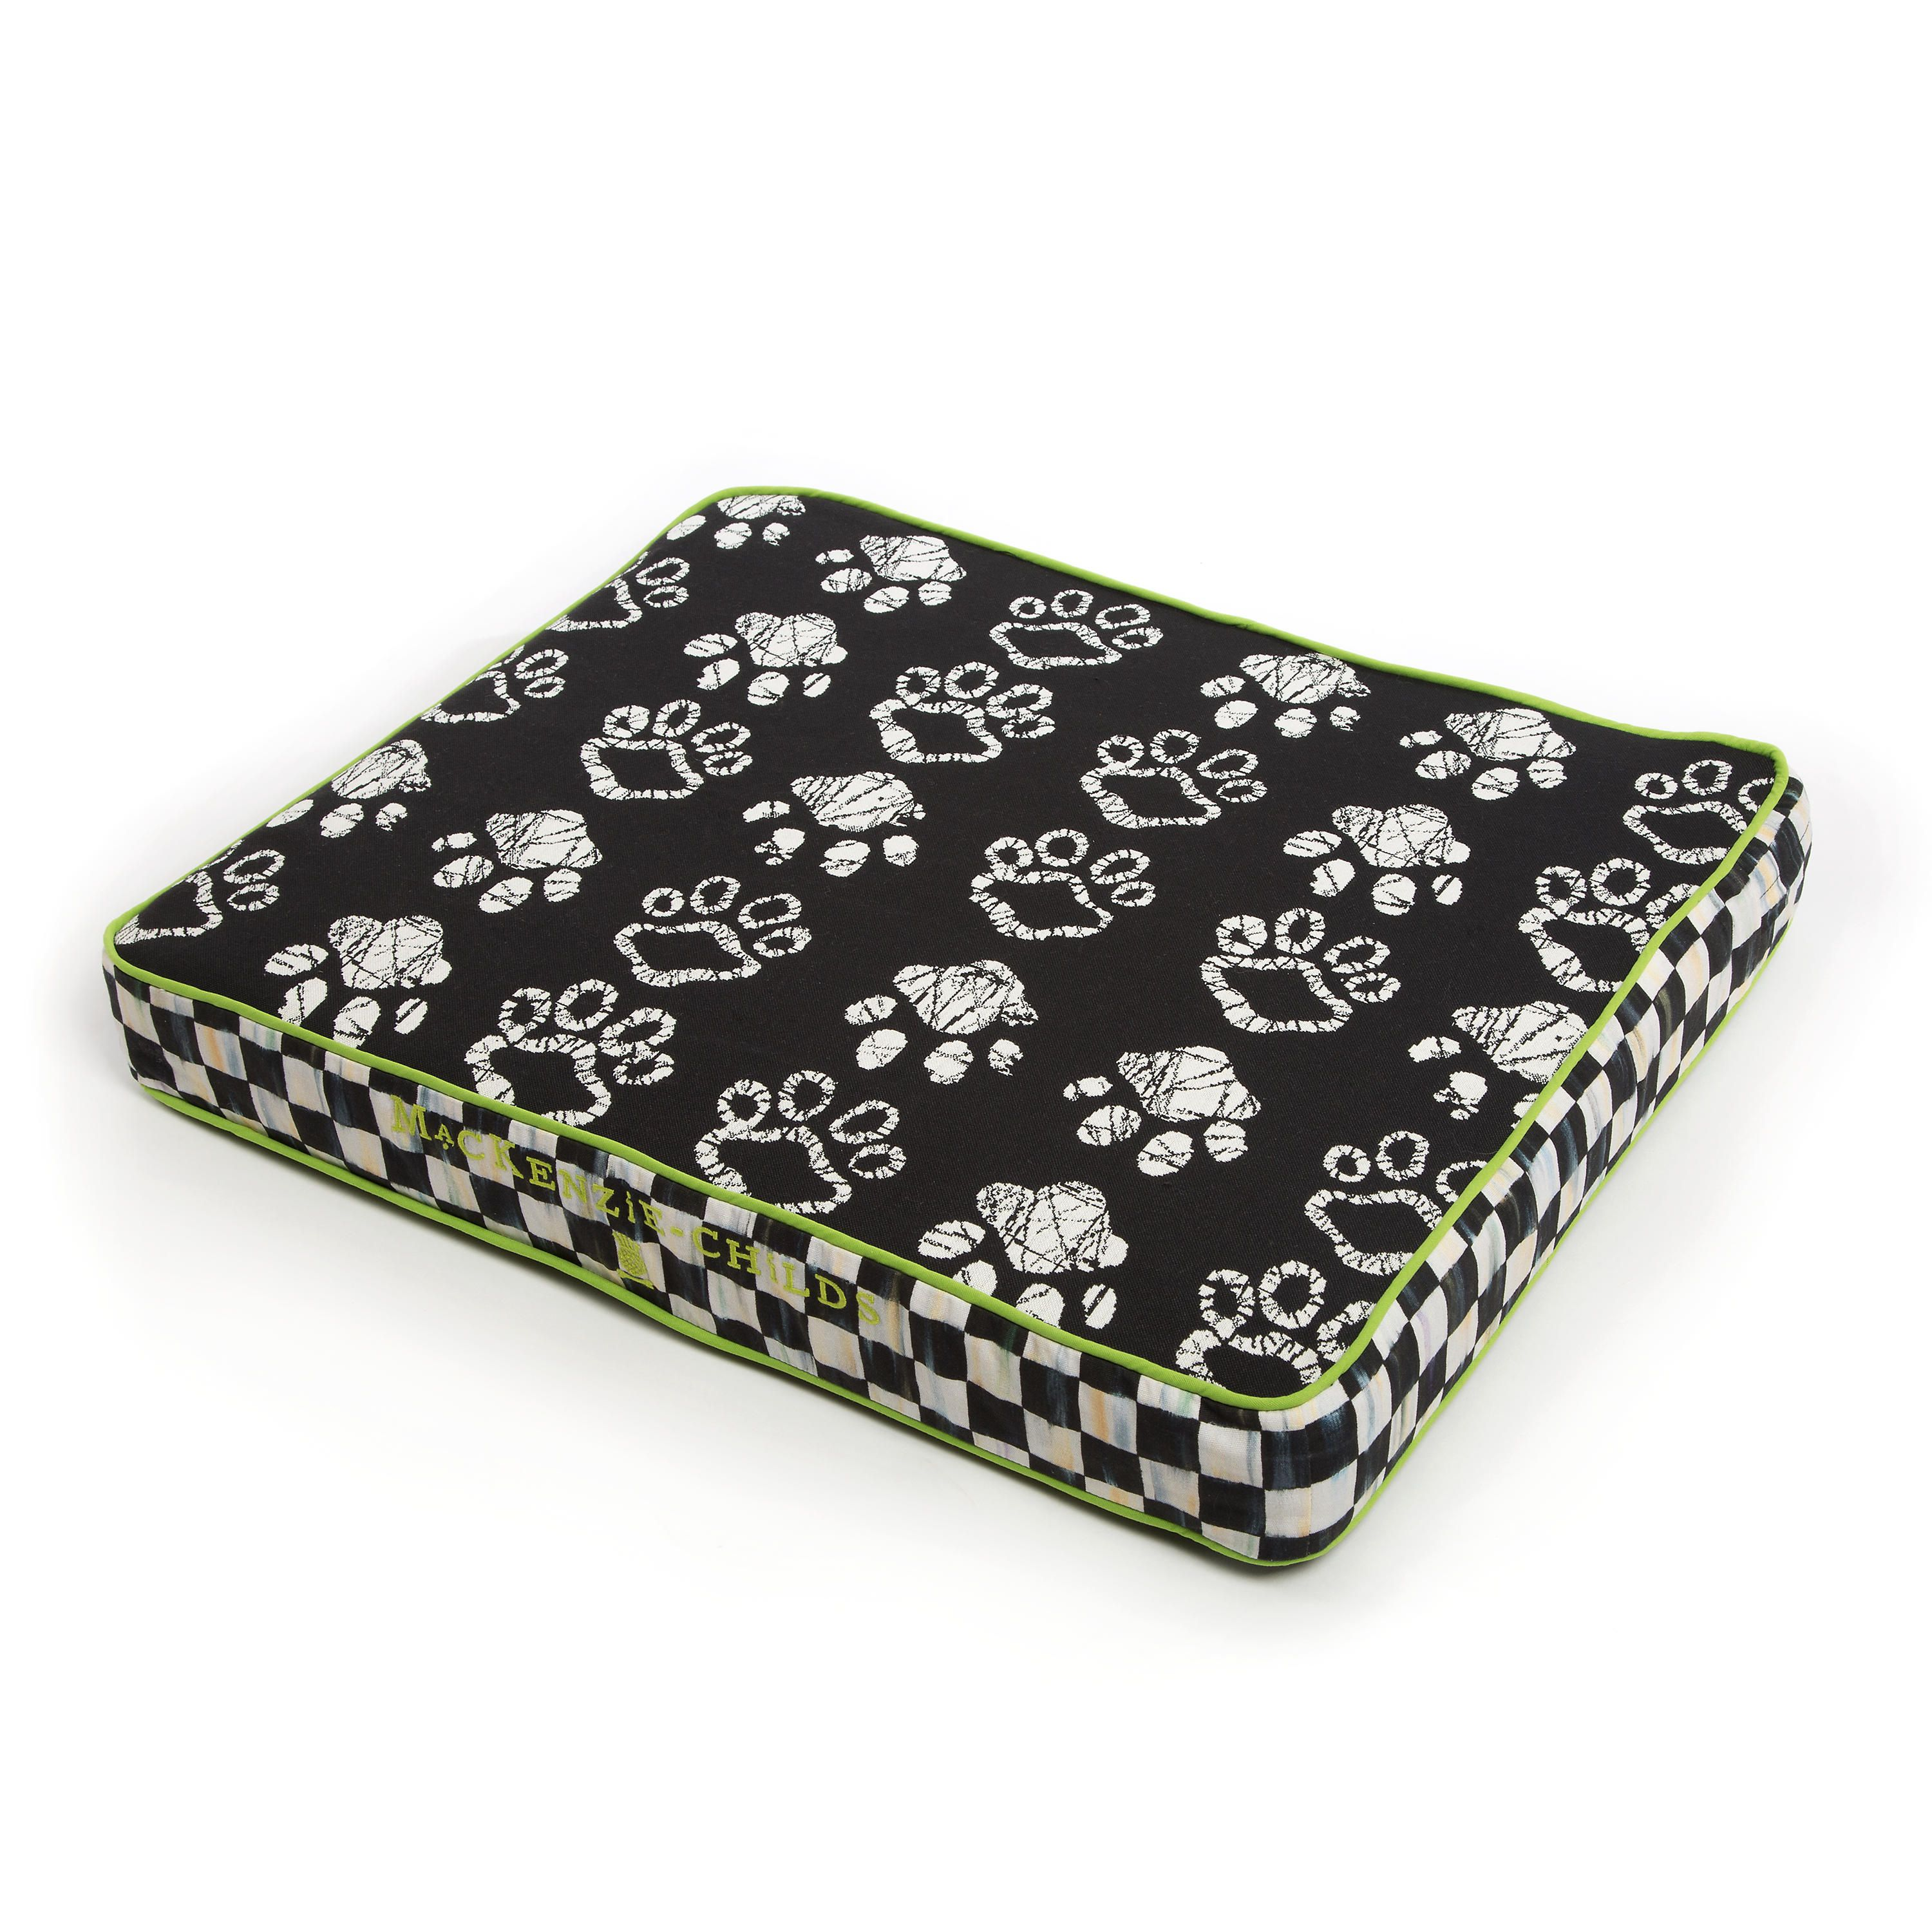 MacKenzieChilds Bow Wow Pet Bed, available in different